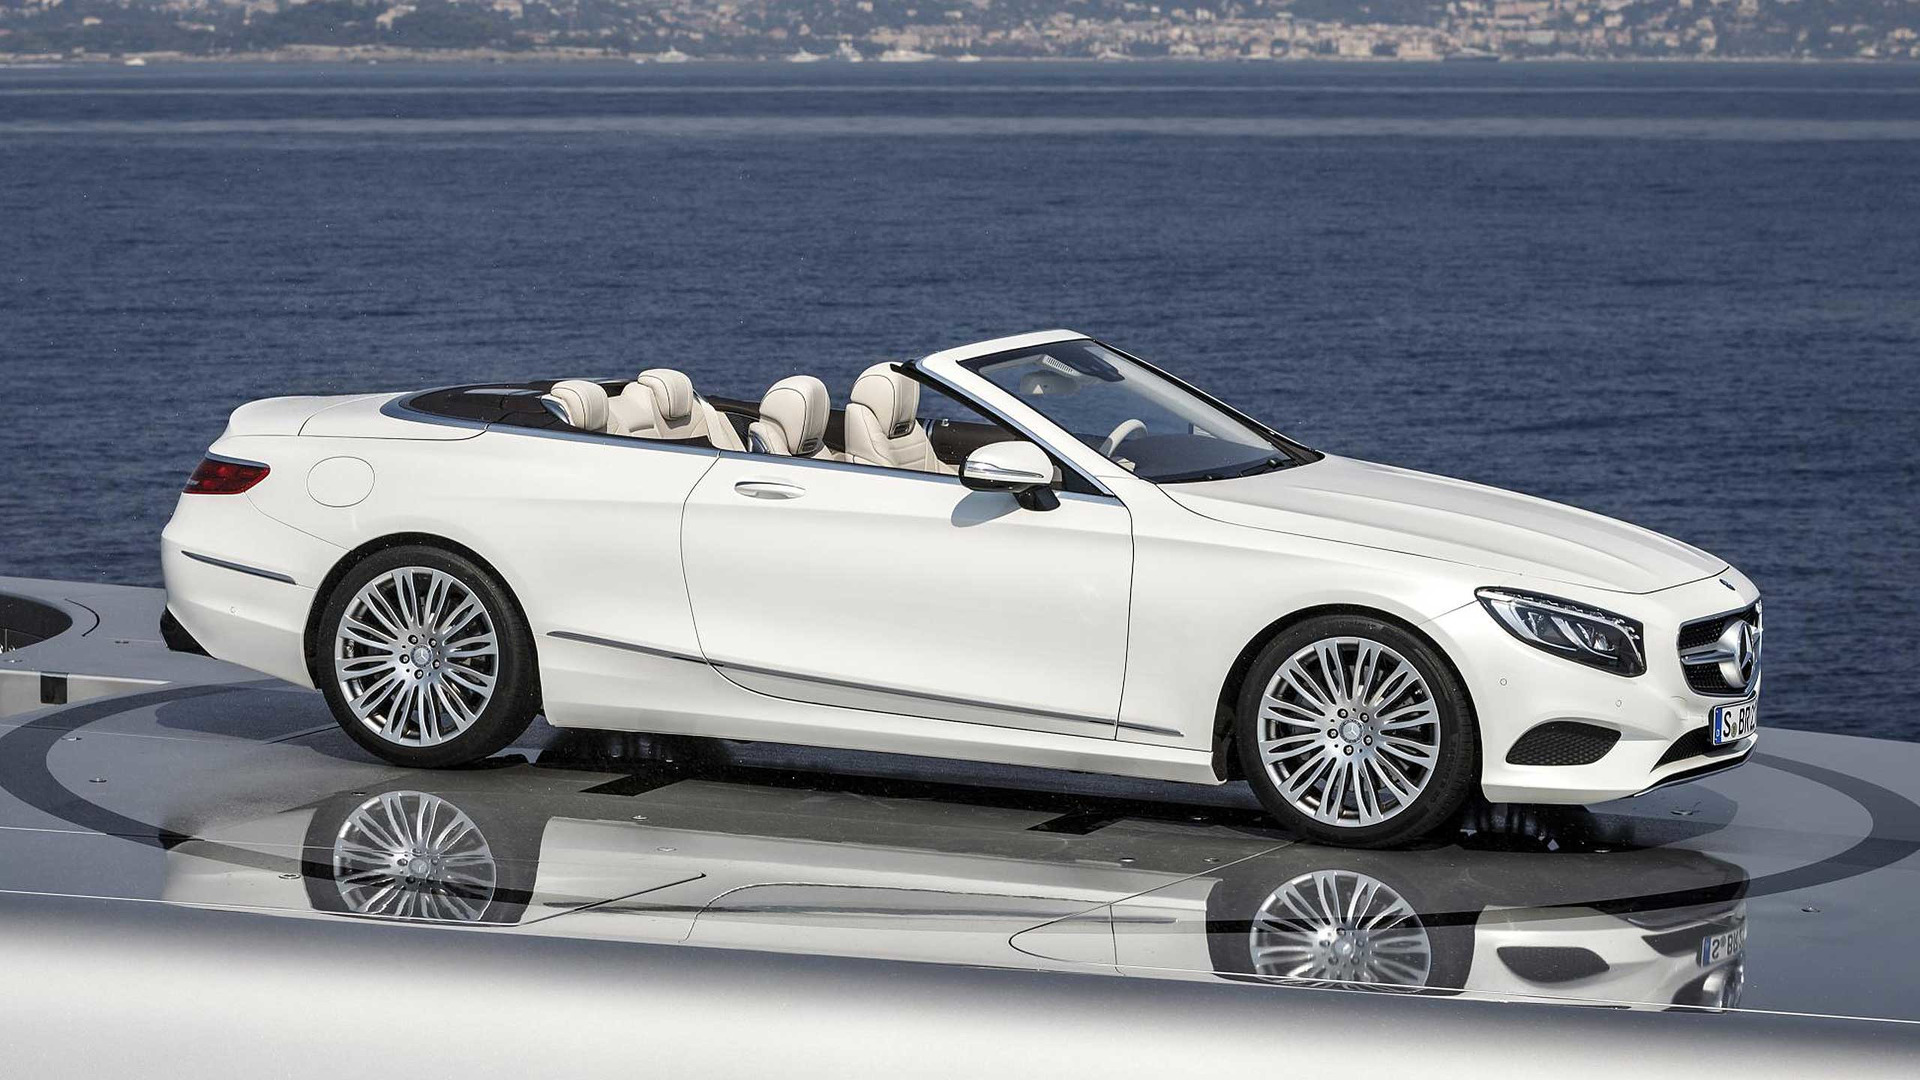 Mercedes Benz S Class Cabriolet News And Reviews Motor1 Com